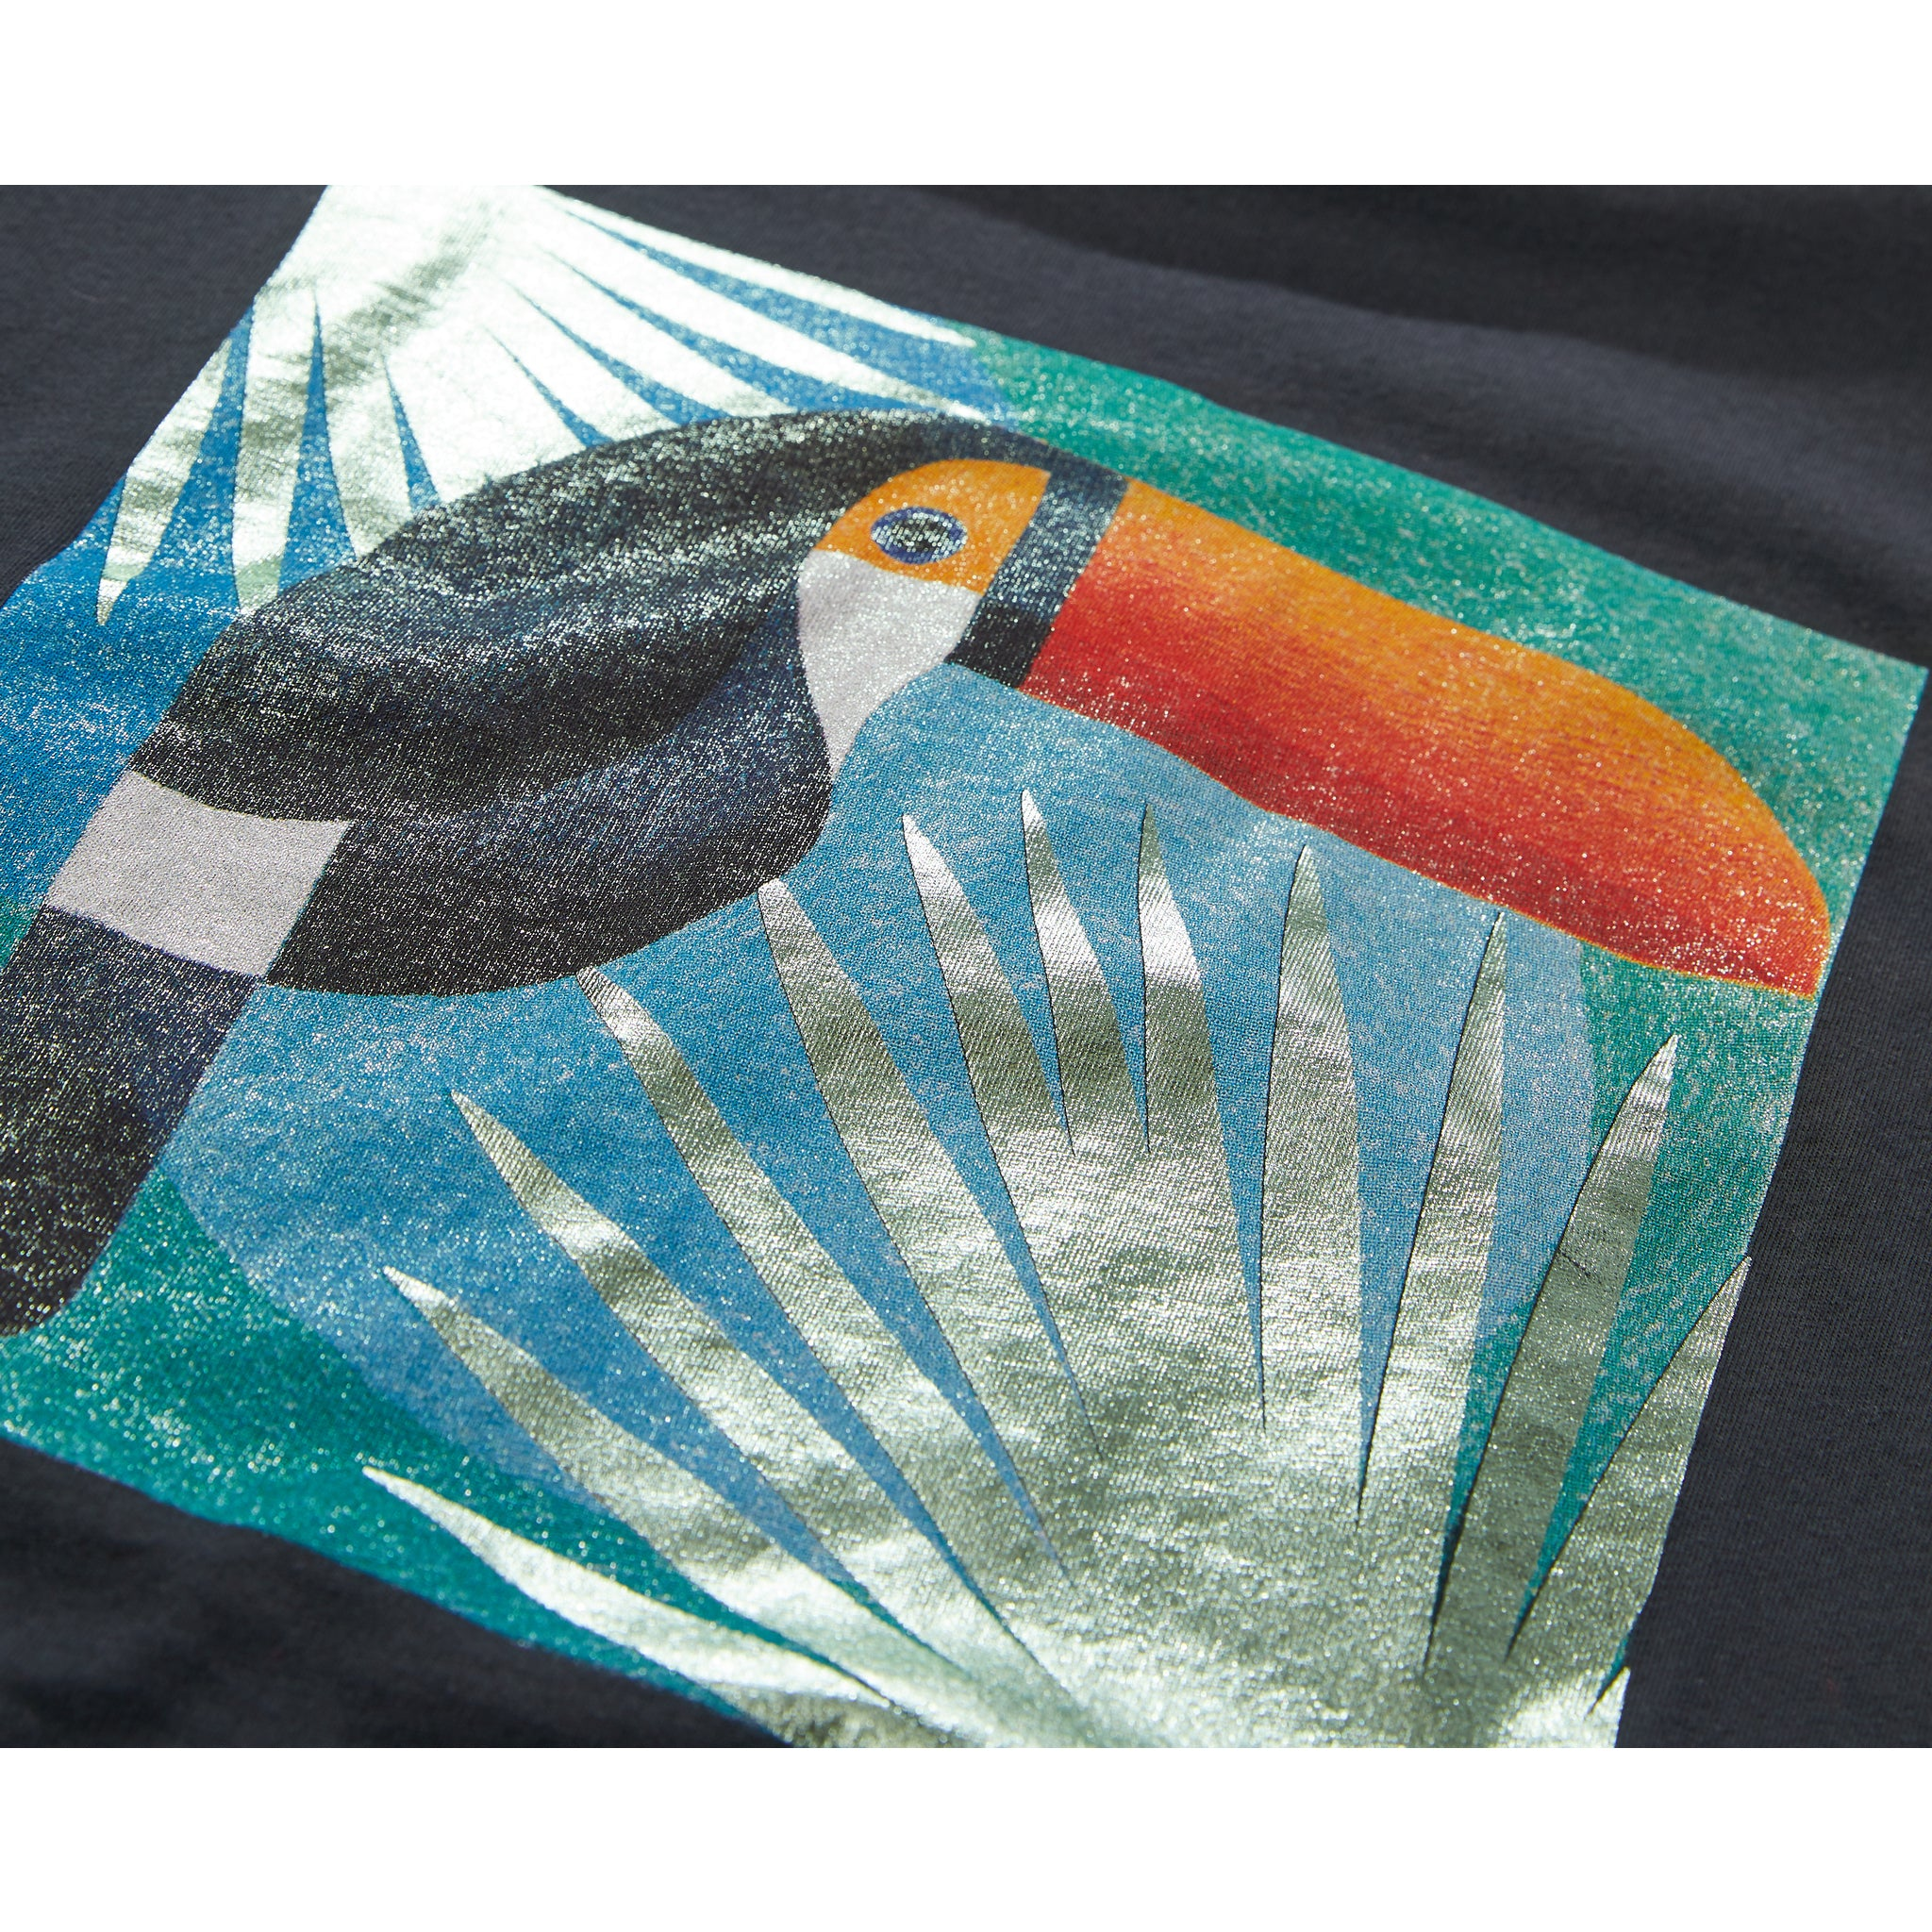 MARSH Ash Black Toucan - Sleeveless T-Shirt 3